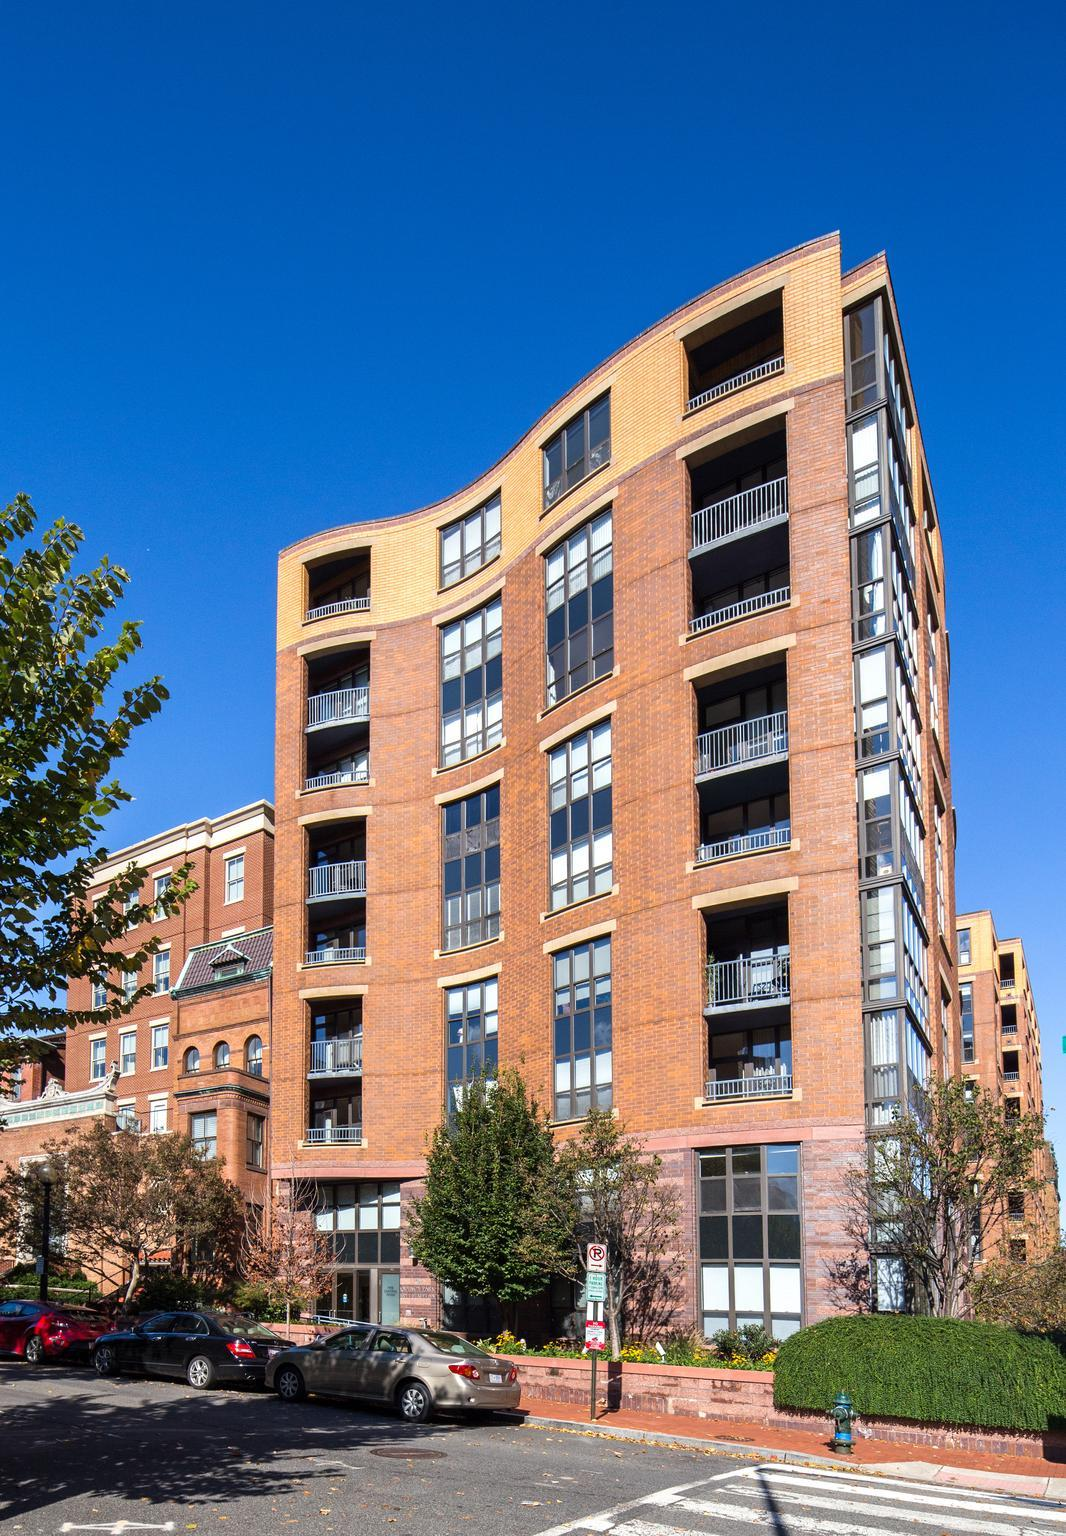 Condominium for Sale at 1001 L St Nw #409 1001 L St Nw #409 Washington, District Of Columbia 20001 United States